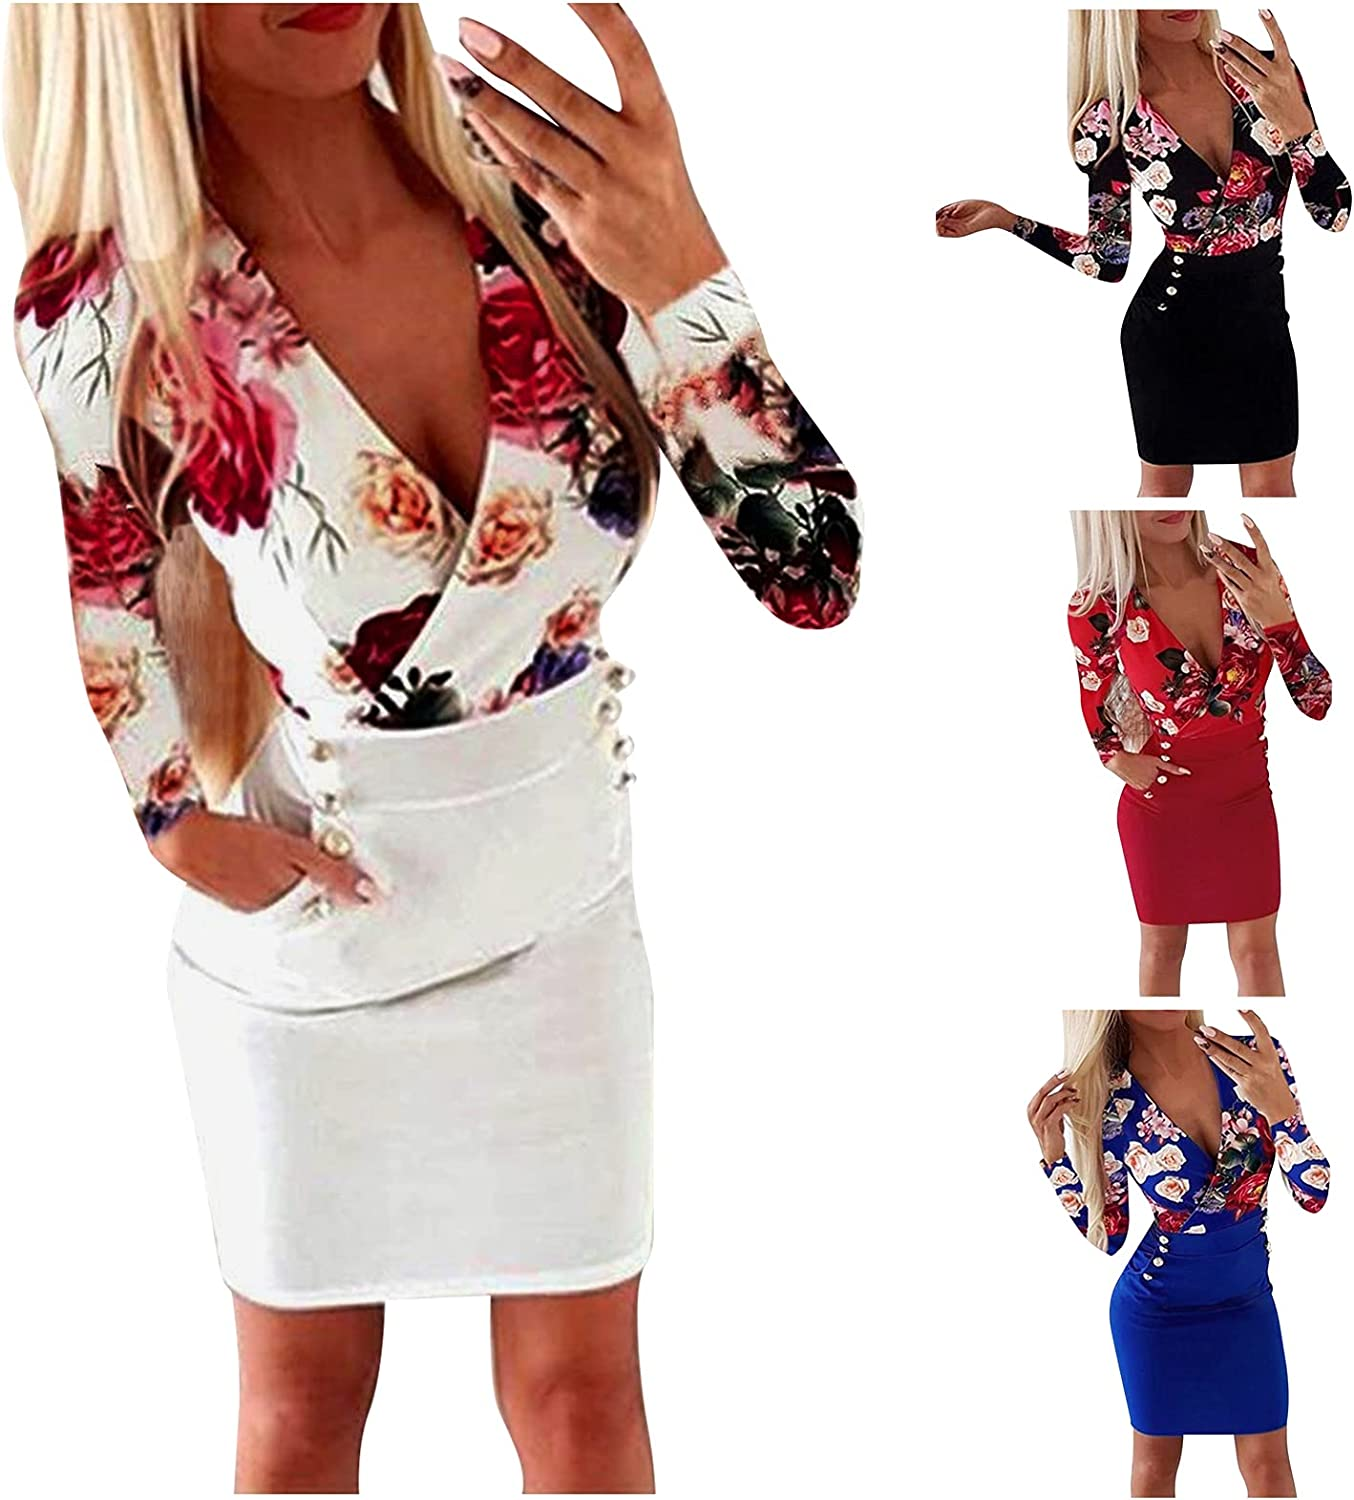 Mid Calf Pink Dress for Women Sexy Lantern Sleeve Low Cut Bustier Elegant Floral Work Party Club